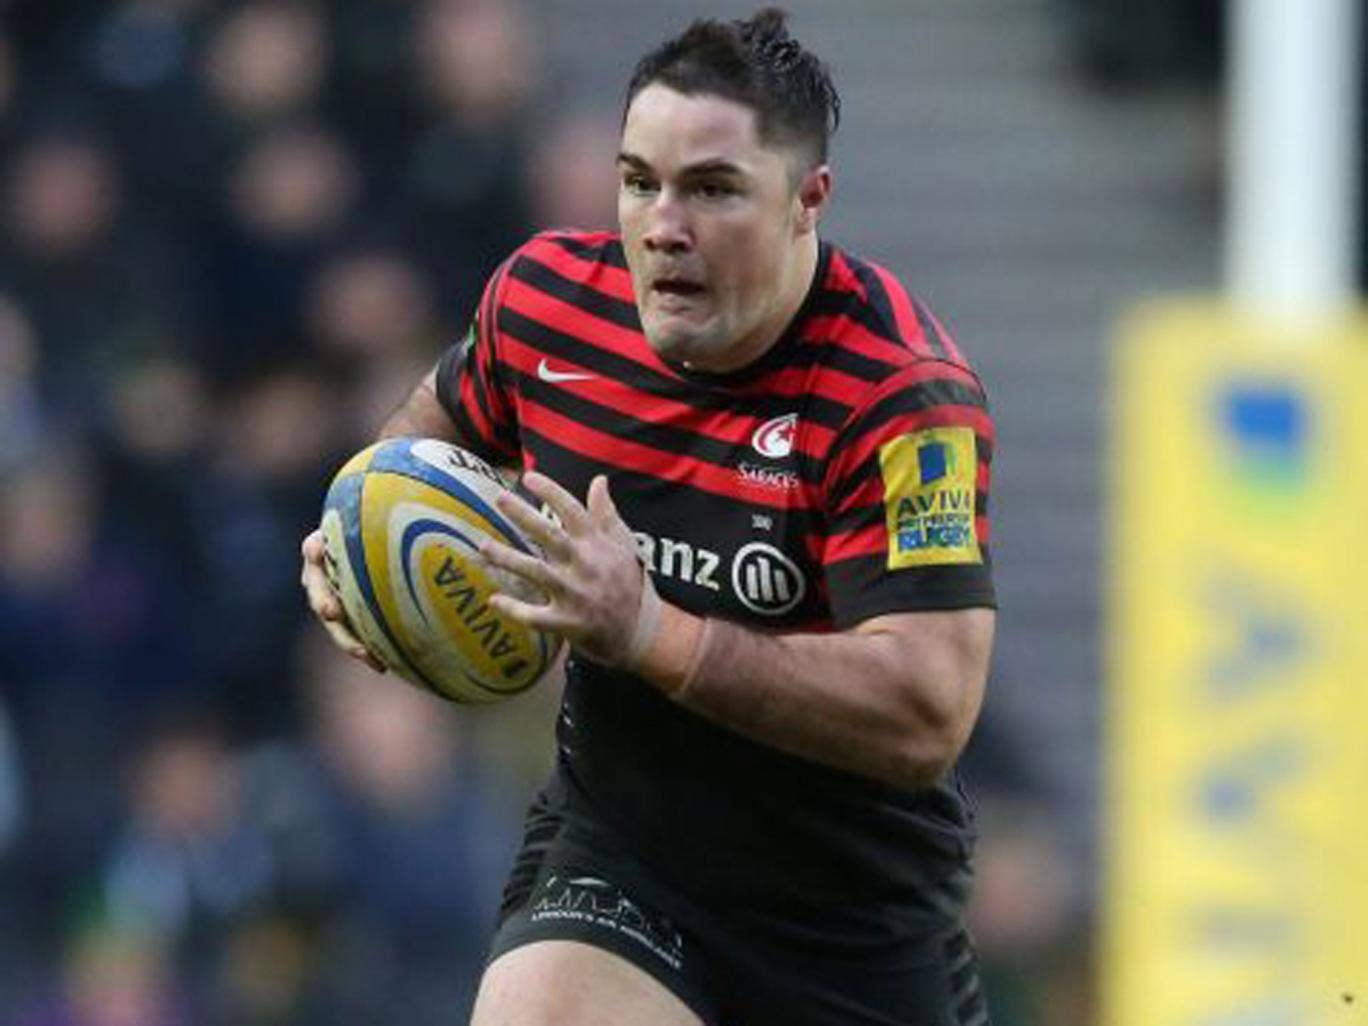 Yet by comparison with Mark McCall of Saracens and Richard Cockerill of Leicester, the urbane O'Shea is feeling laid-back to the point of horizontalism